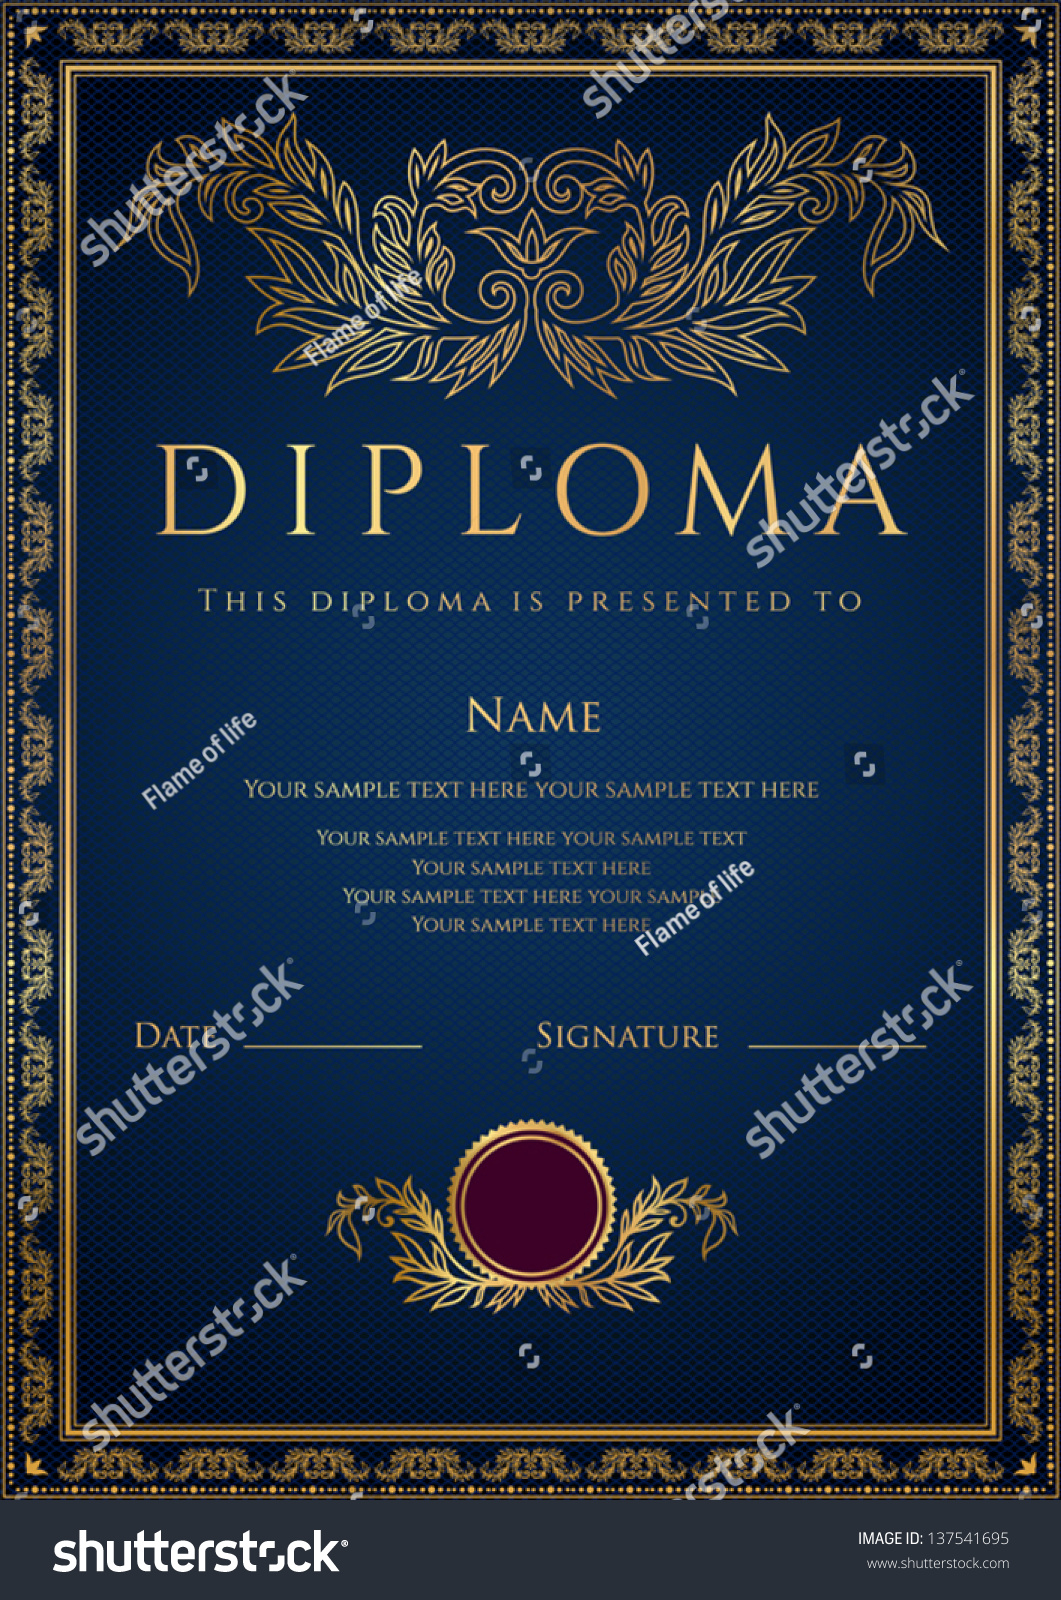 Vertical dark blue diploma certificate template stock vector vertical dark blue diploma certificate template with guilloche pattern watermarks yelopaper Choice Image